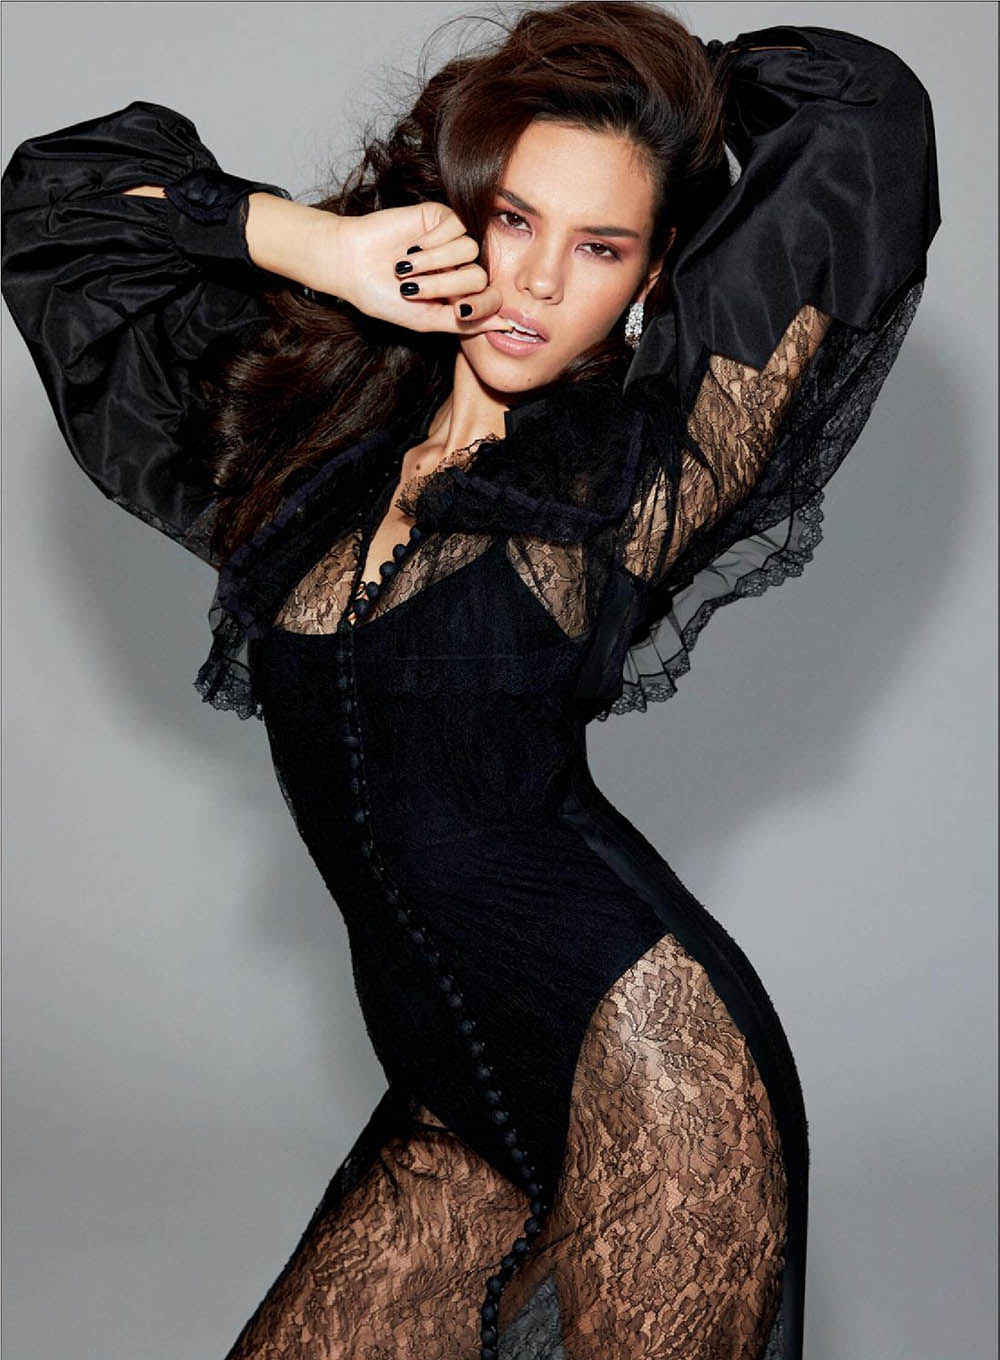 Catriona Gray by Carin Backoff for V Magazine Summer 2019